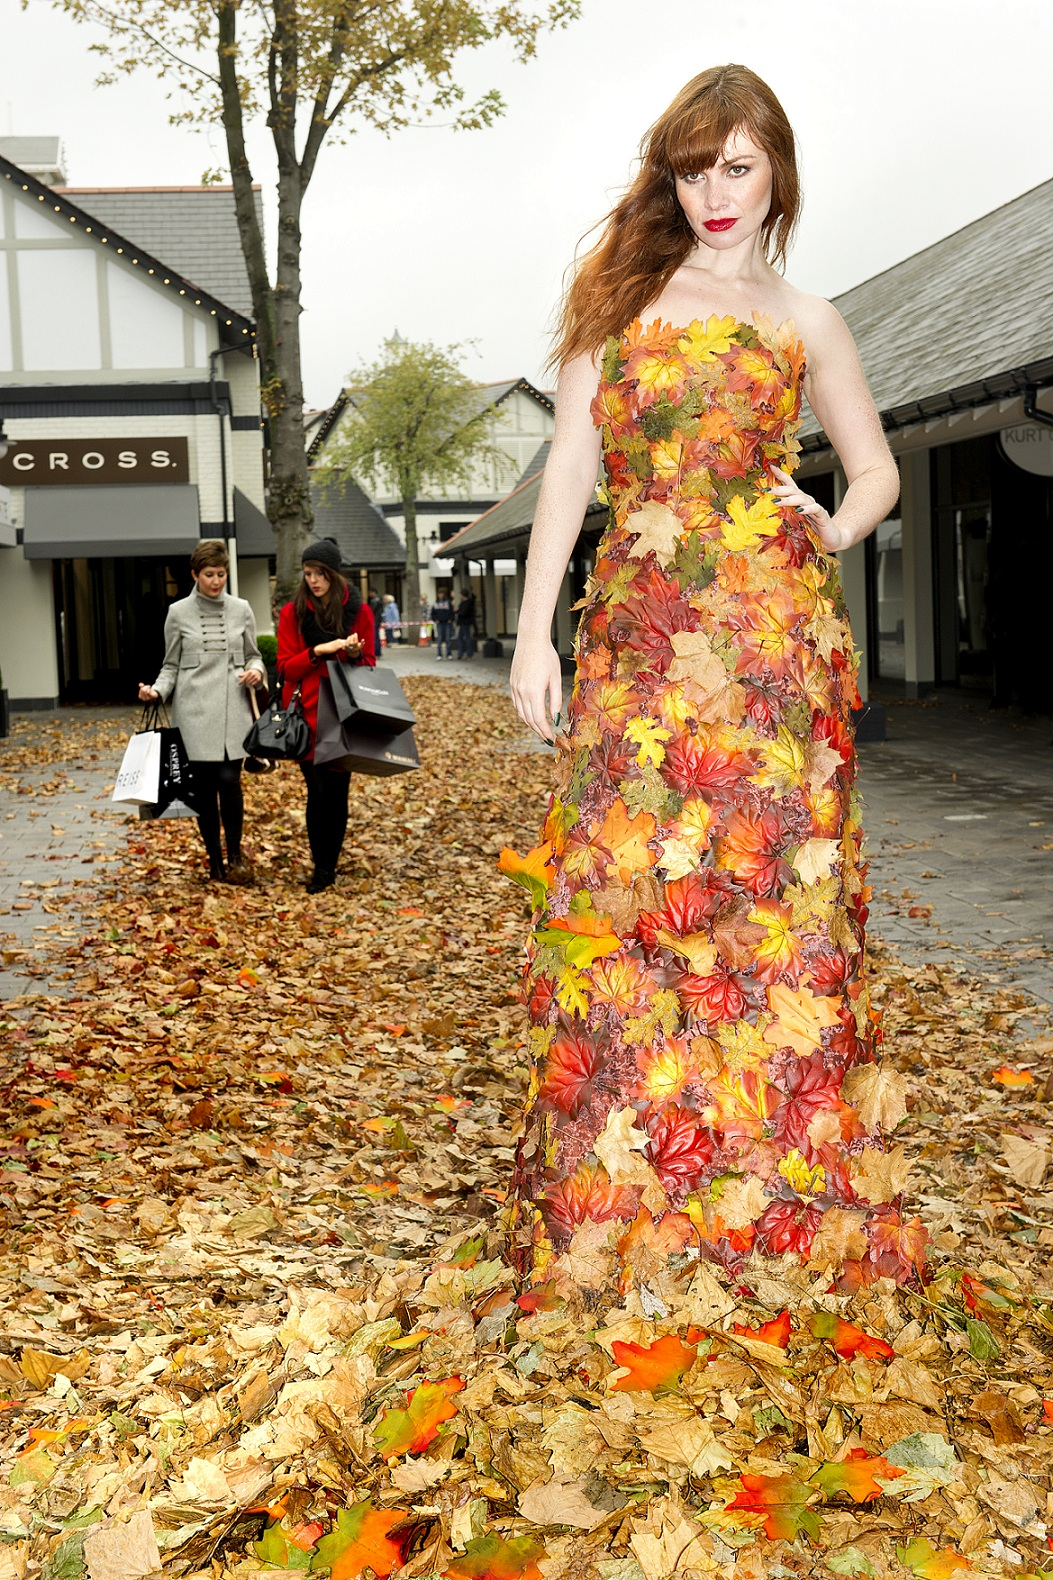 A mdoel wearing a dress made entirely out fo leaves poses as shoppers holding bags walk by